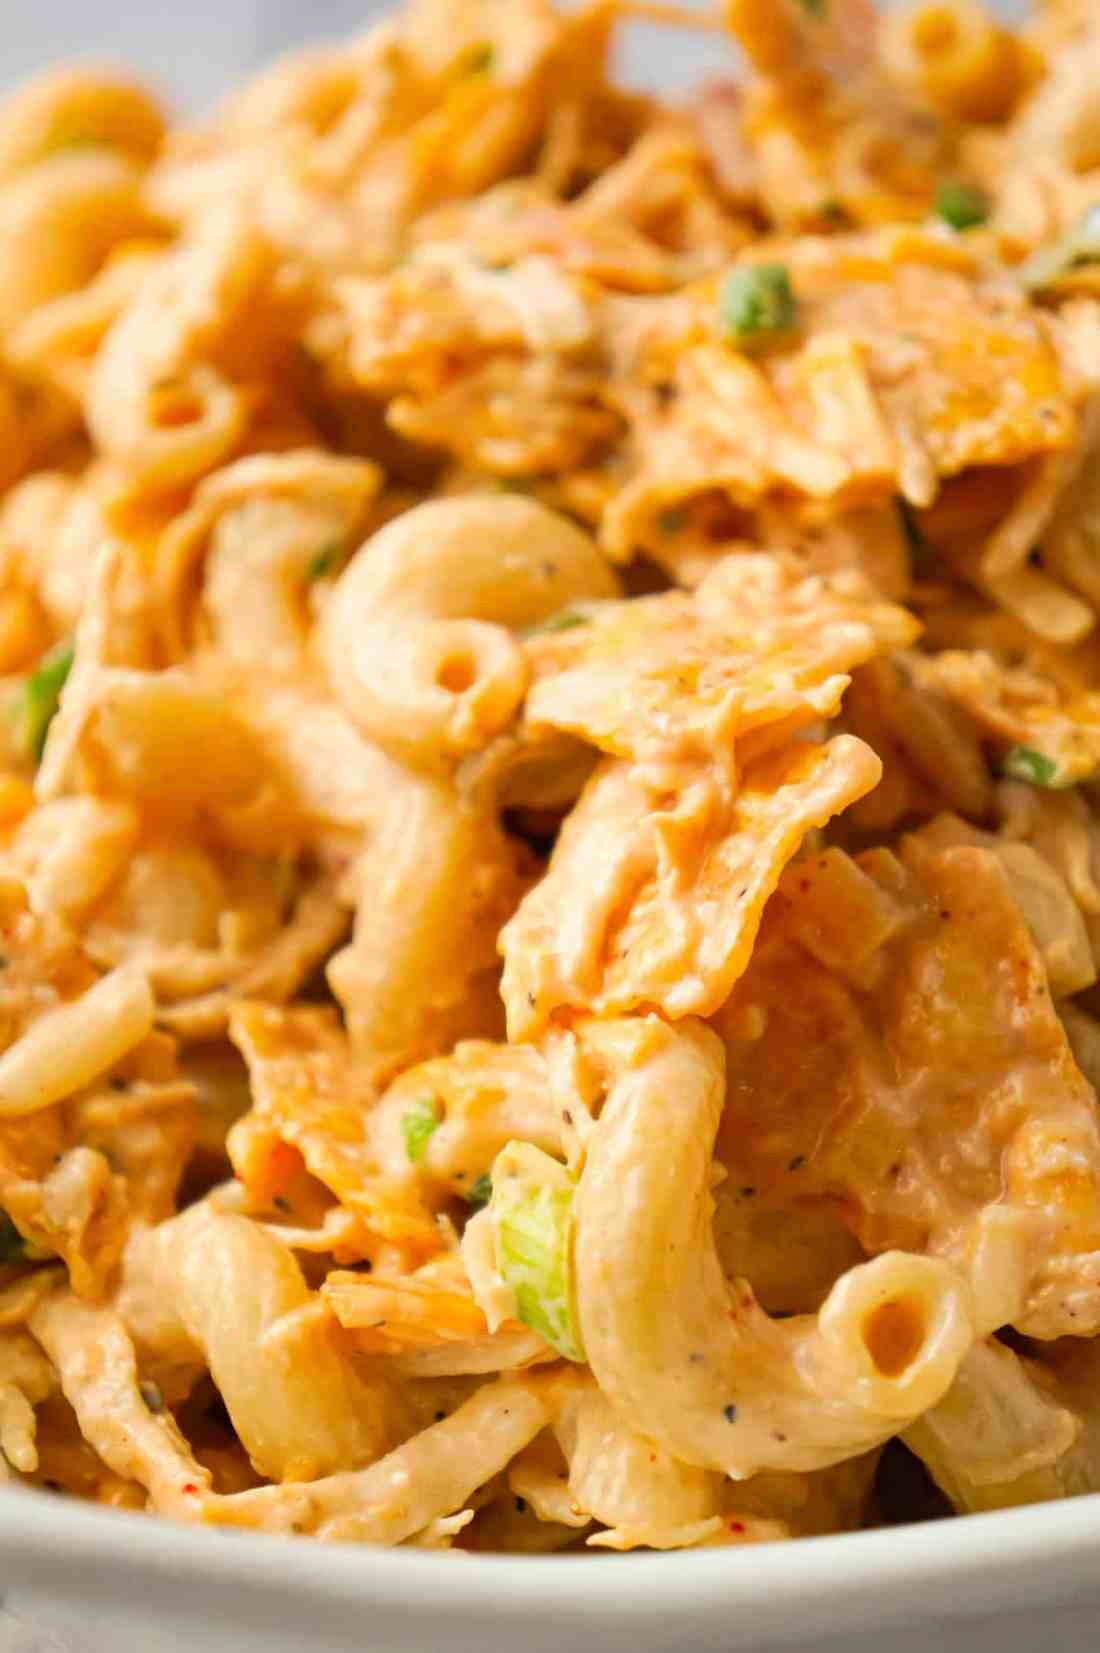 Doritos Chicken Pasta Salad is a tasty cold side dish recipe loaded with shredded chicken, chopped green onions, ranch dressing, salsa, shredded cheese and crumbled Doritos.